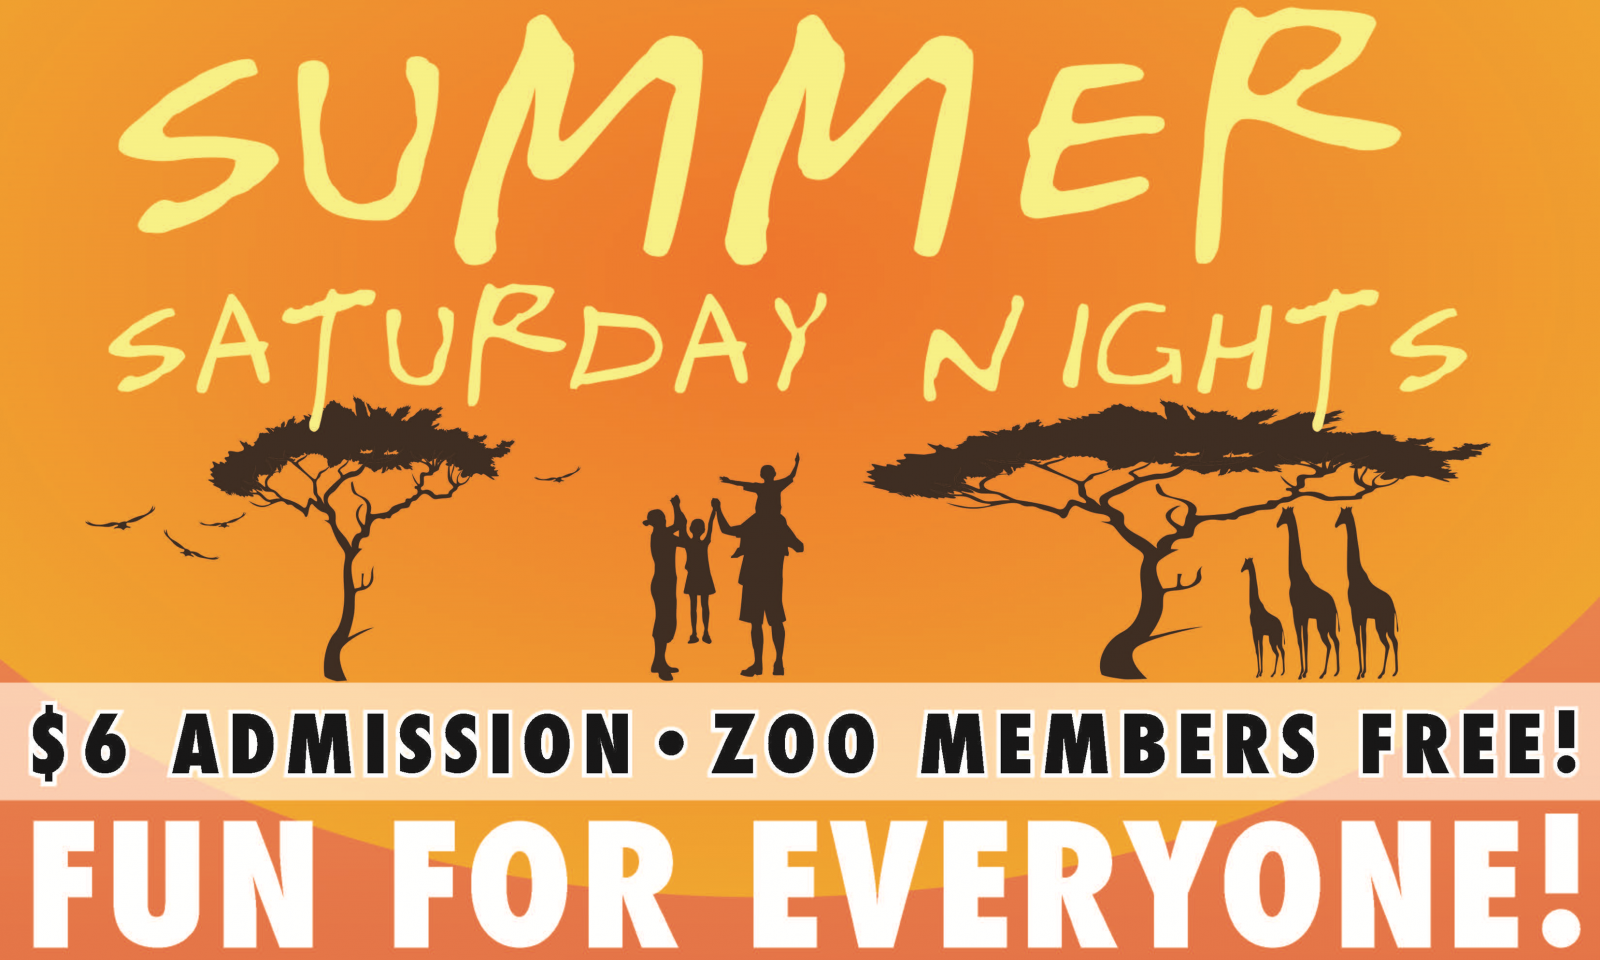 Melbourne Zoo Promo Code & Deals Zoos Victoria is a not-for-profit conservation organisation dedicated to fighting wildlife extinction. They do this through breeding and recovery programs for threatened species and by working with visitors and supporters to .